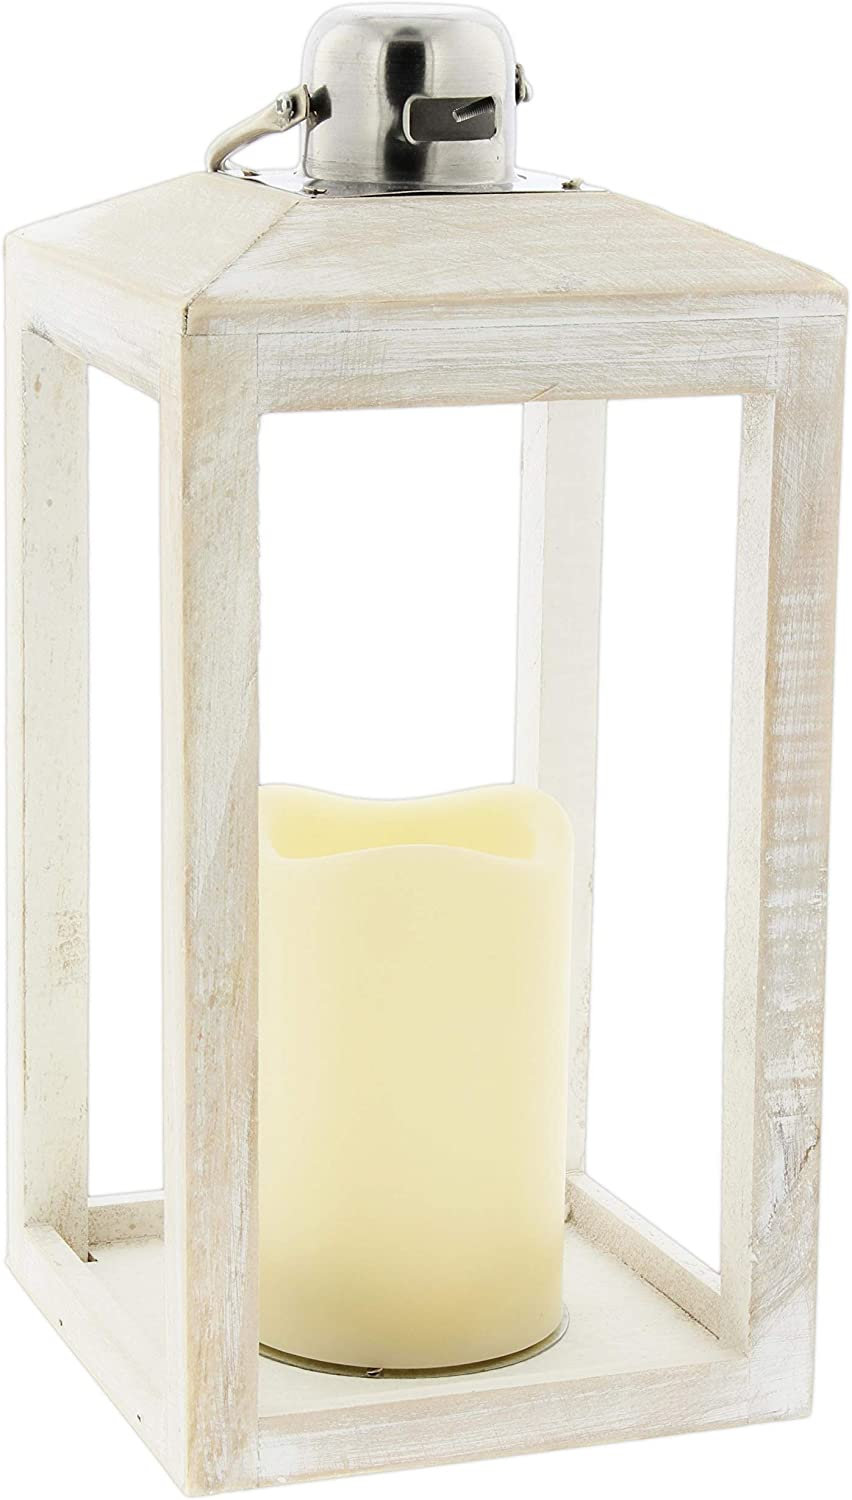 The Bridge Collection Rustic Whitewashed Wood Lantern with Flameless LED Candle